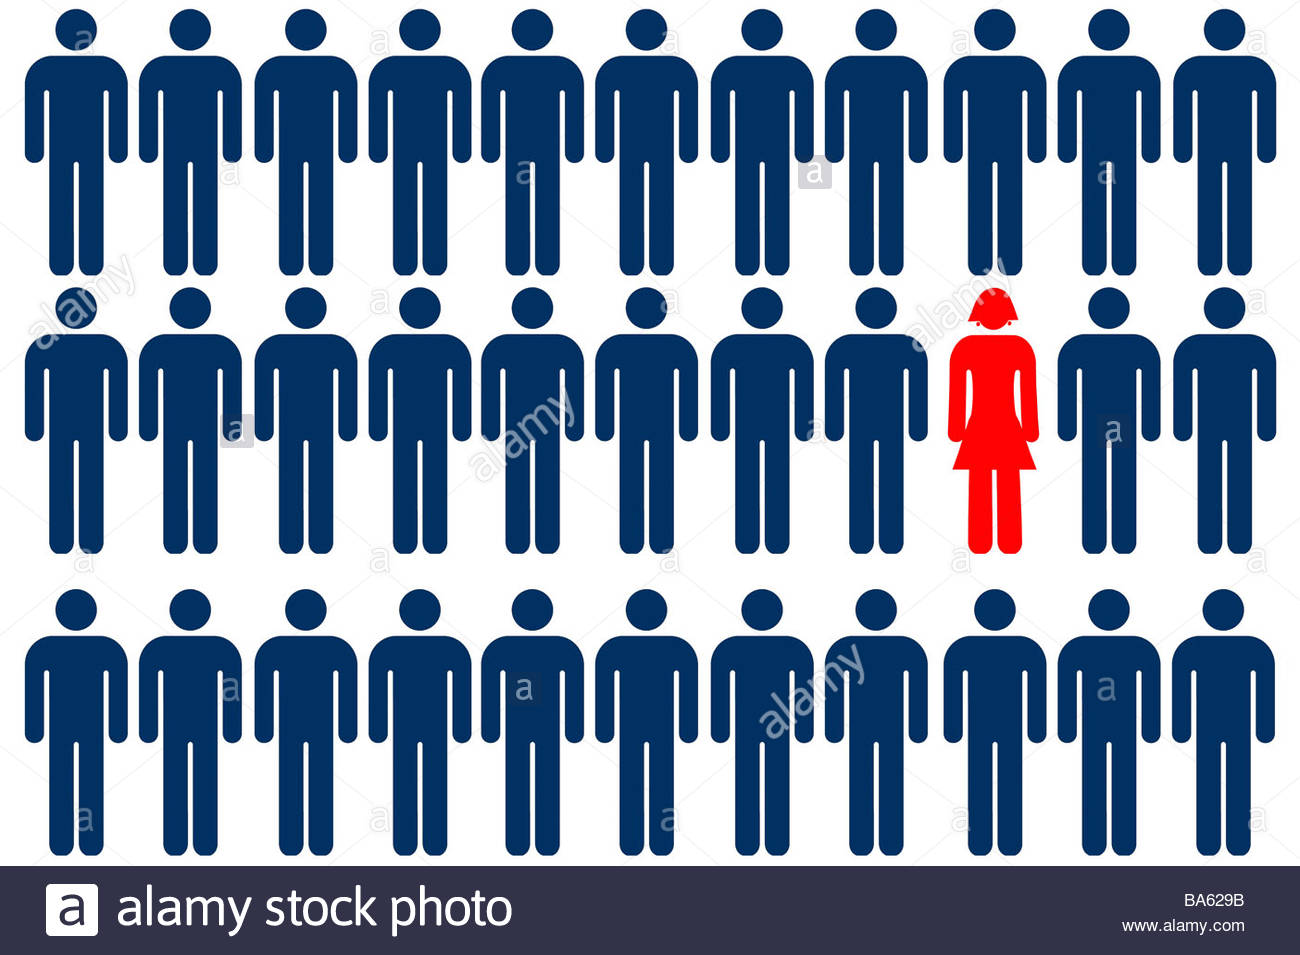 Unique female person symbol among group of male person symbols - Stock Image